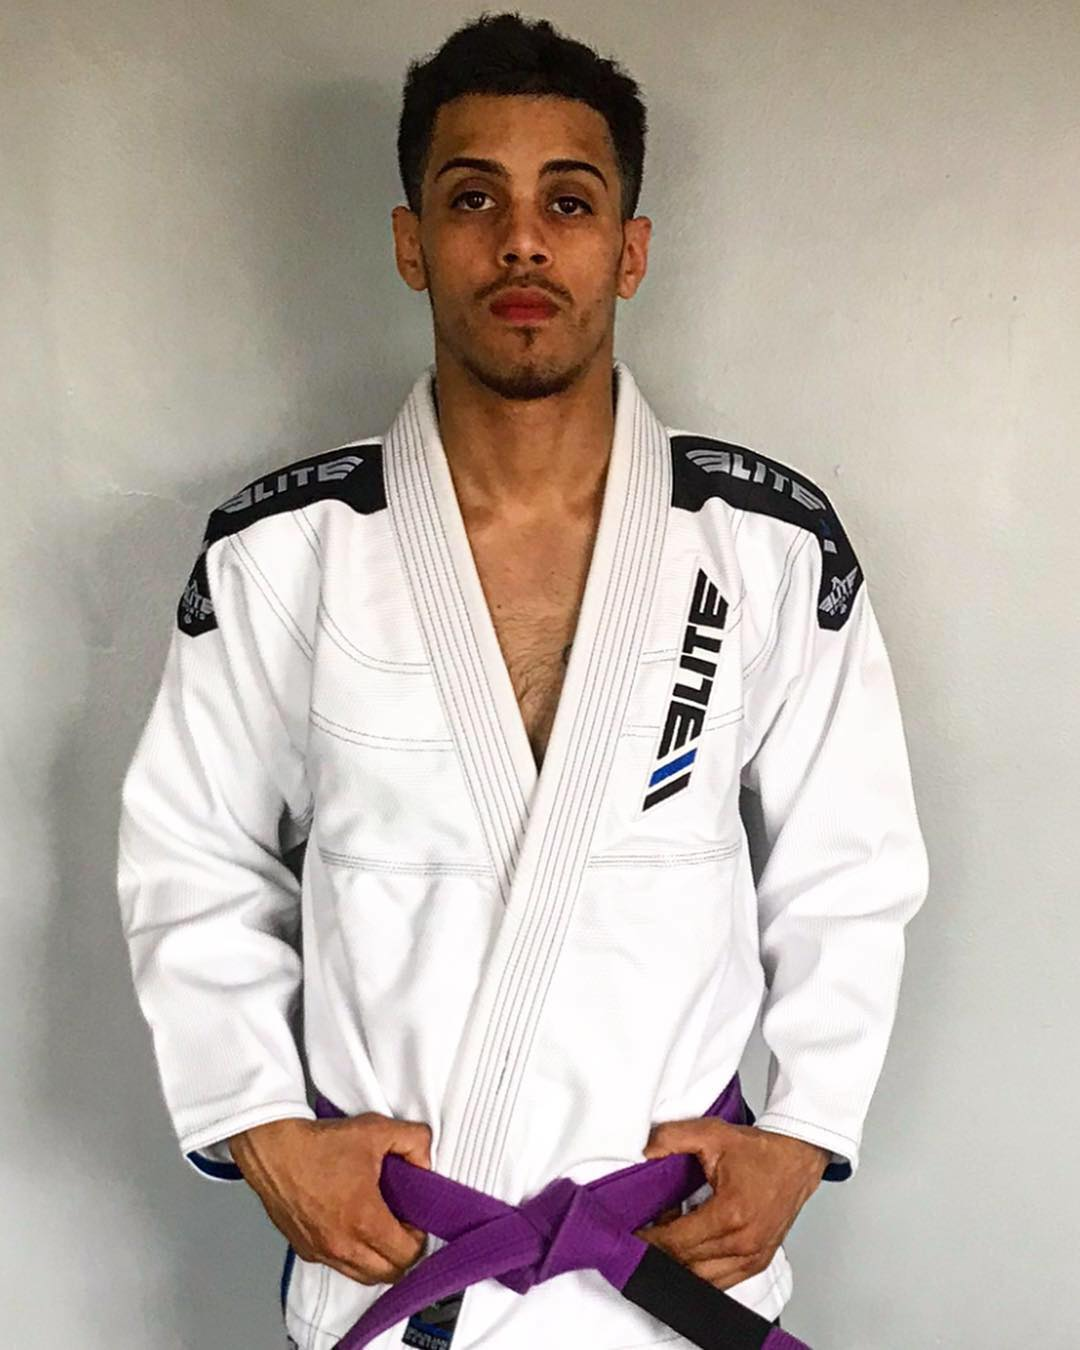 Elite sports Team Elite BJJ Jefferson Zelaya image4.jpg